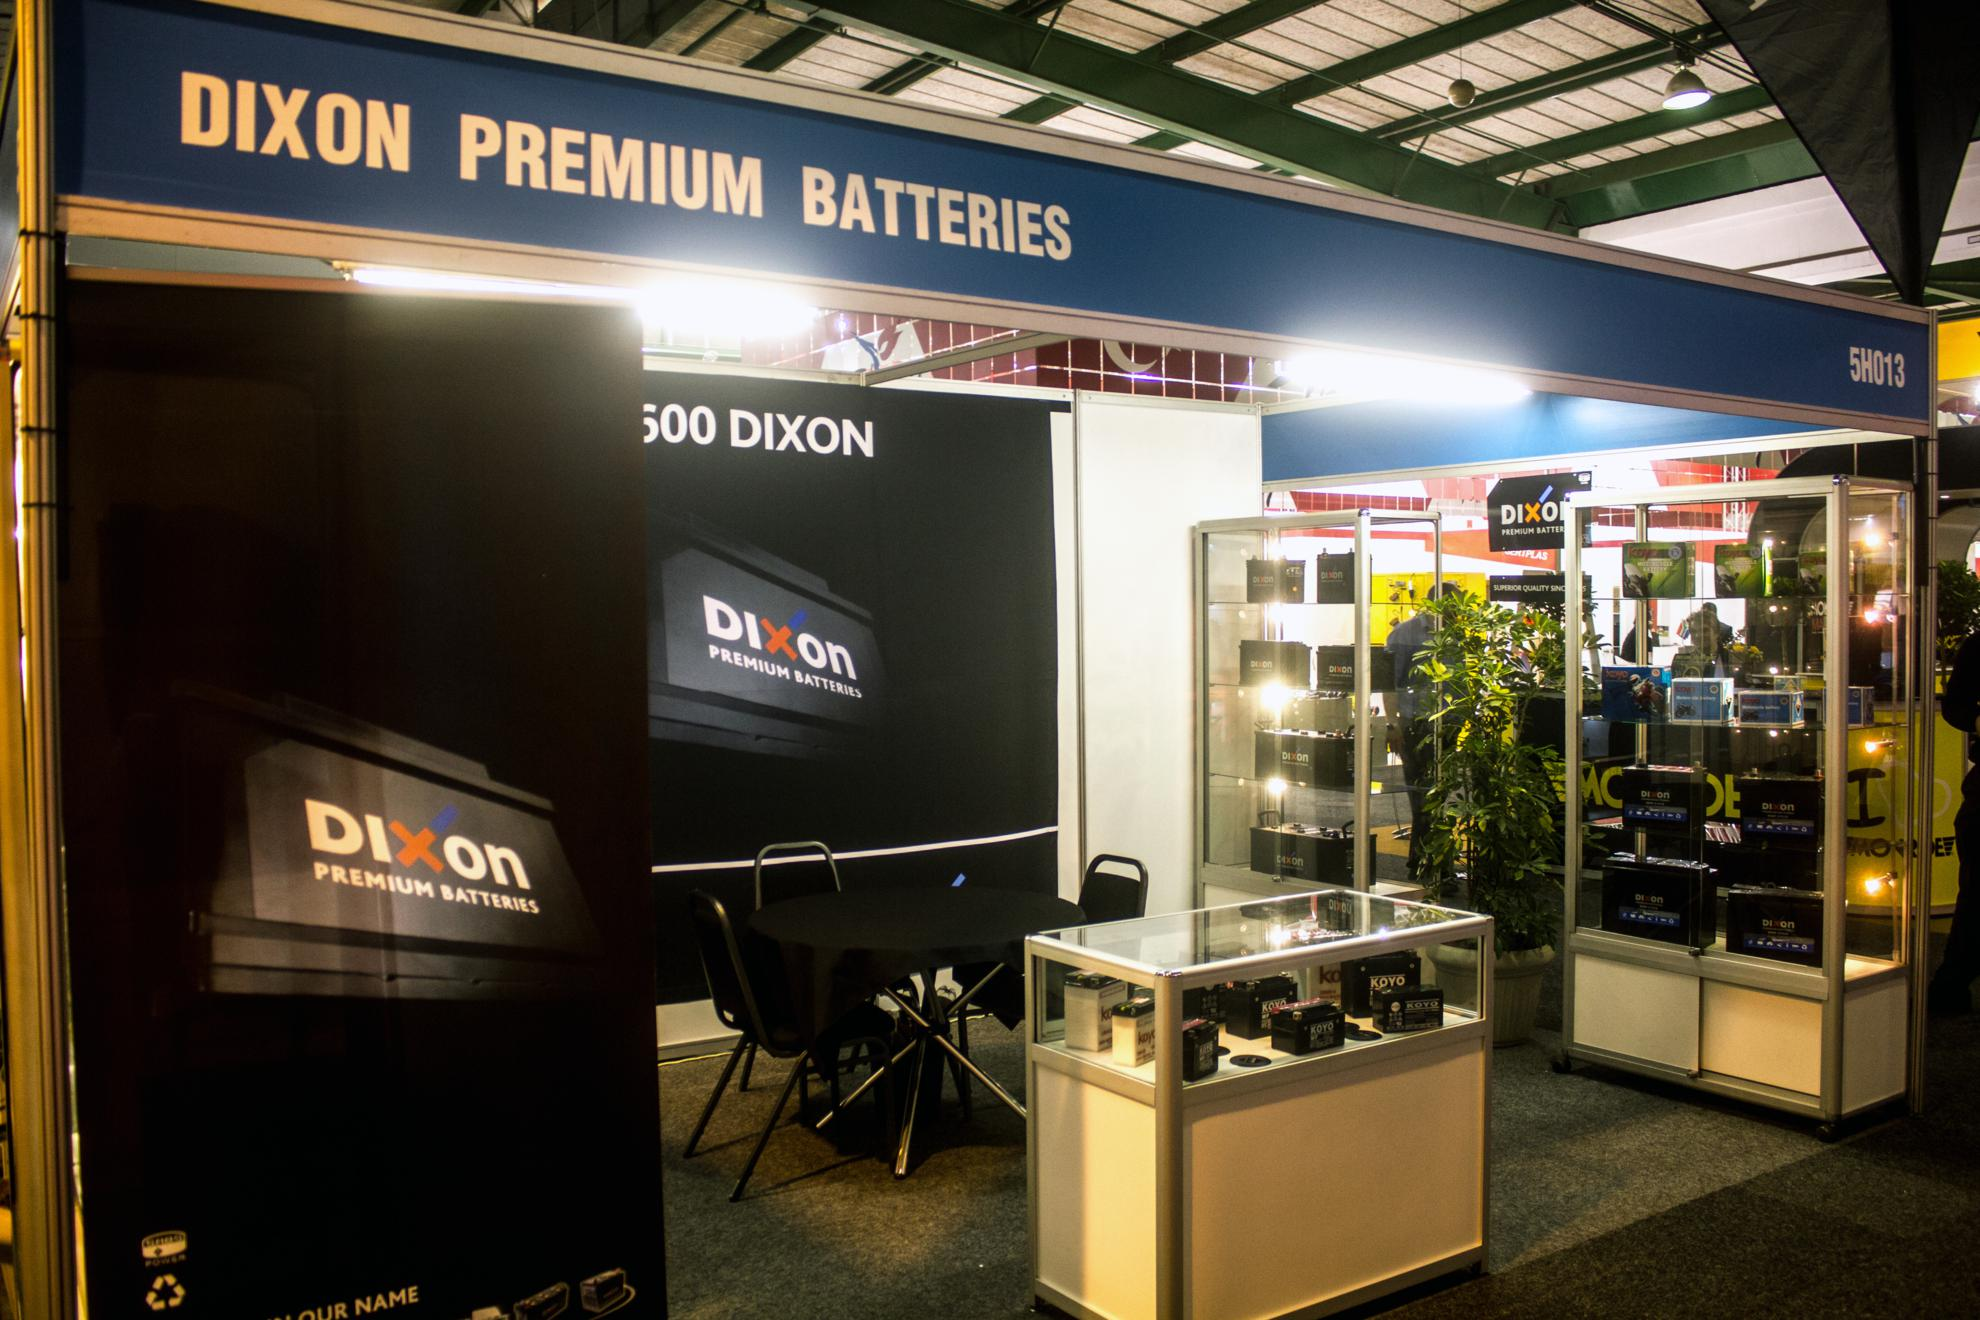 Dixon-Premium-Batteries-Automechanika